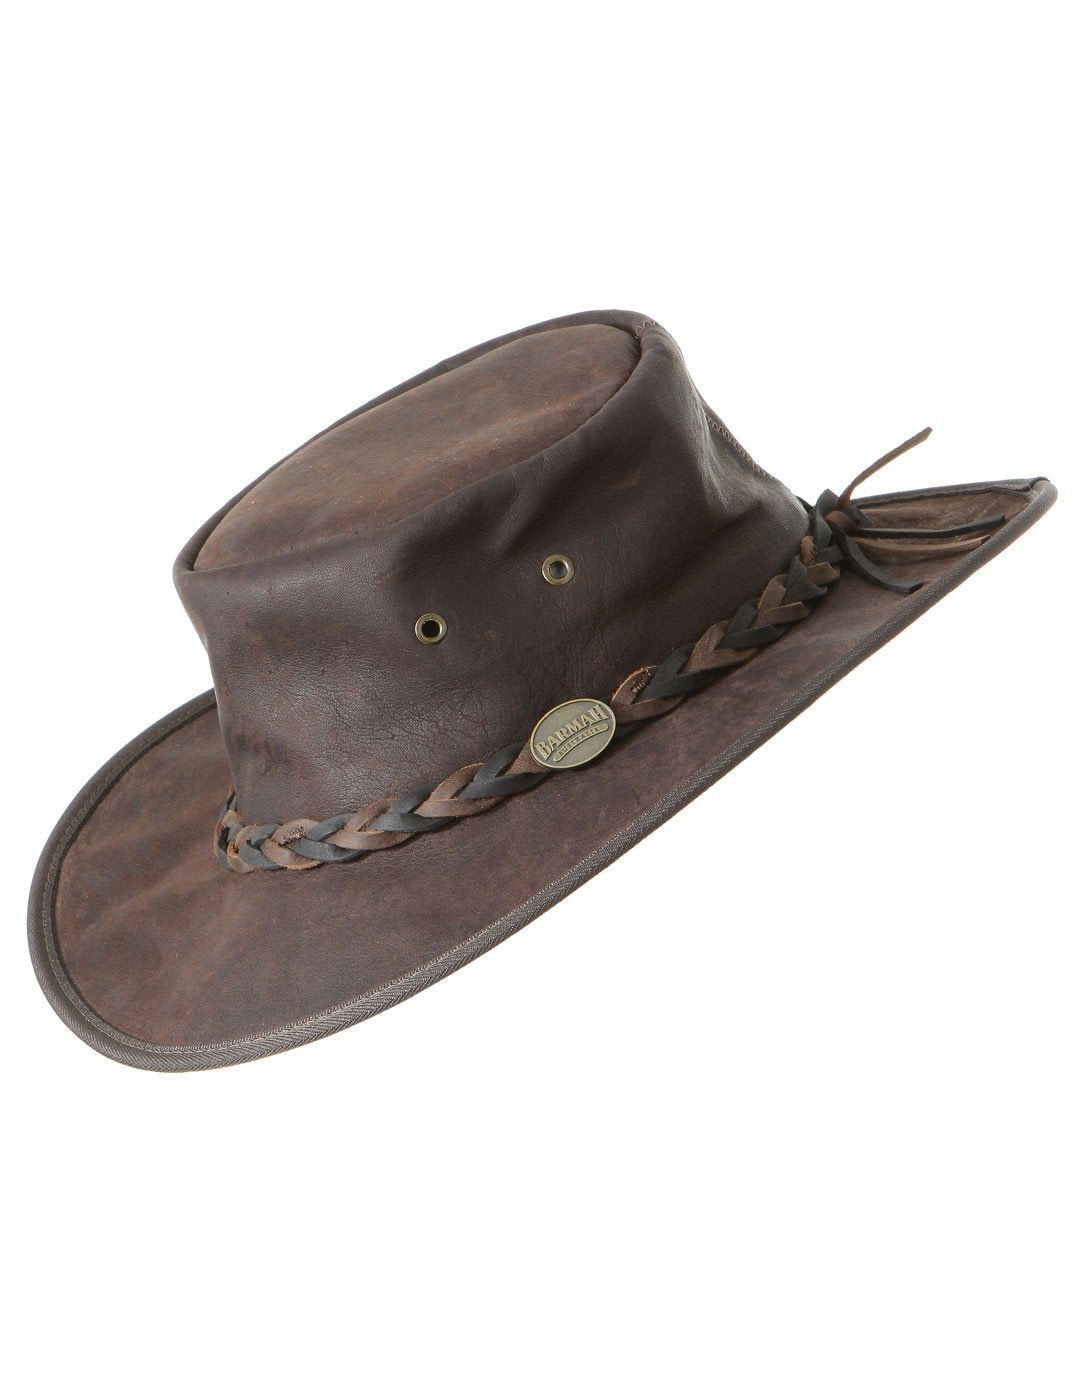 Image of Barmah Squashy Roo Hat - Brown Crackle